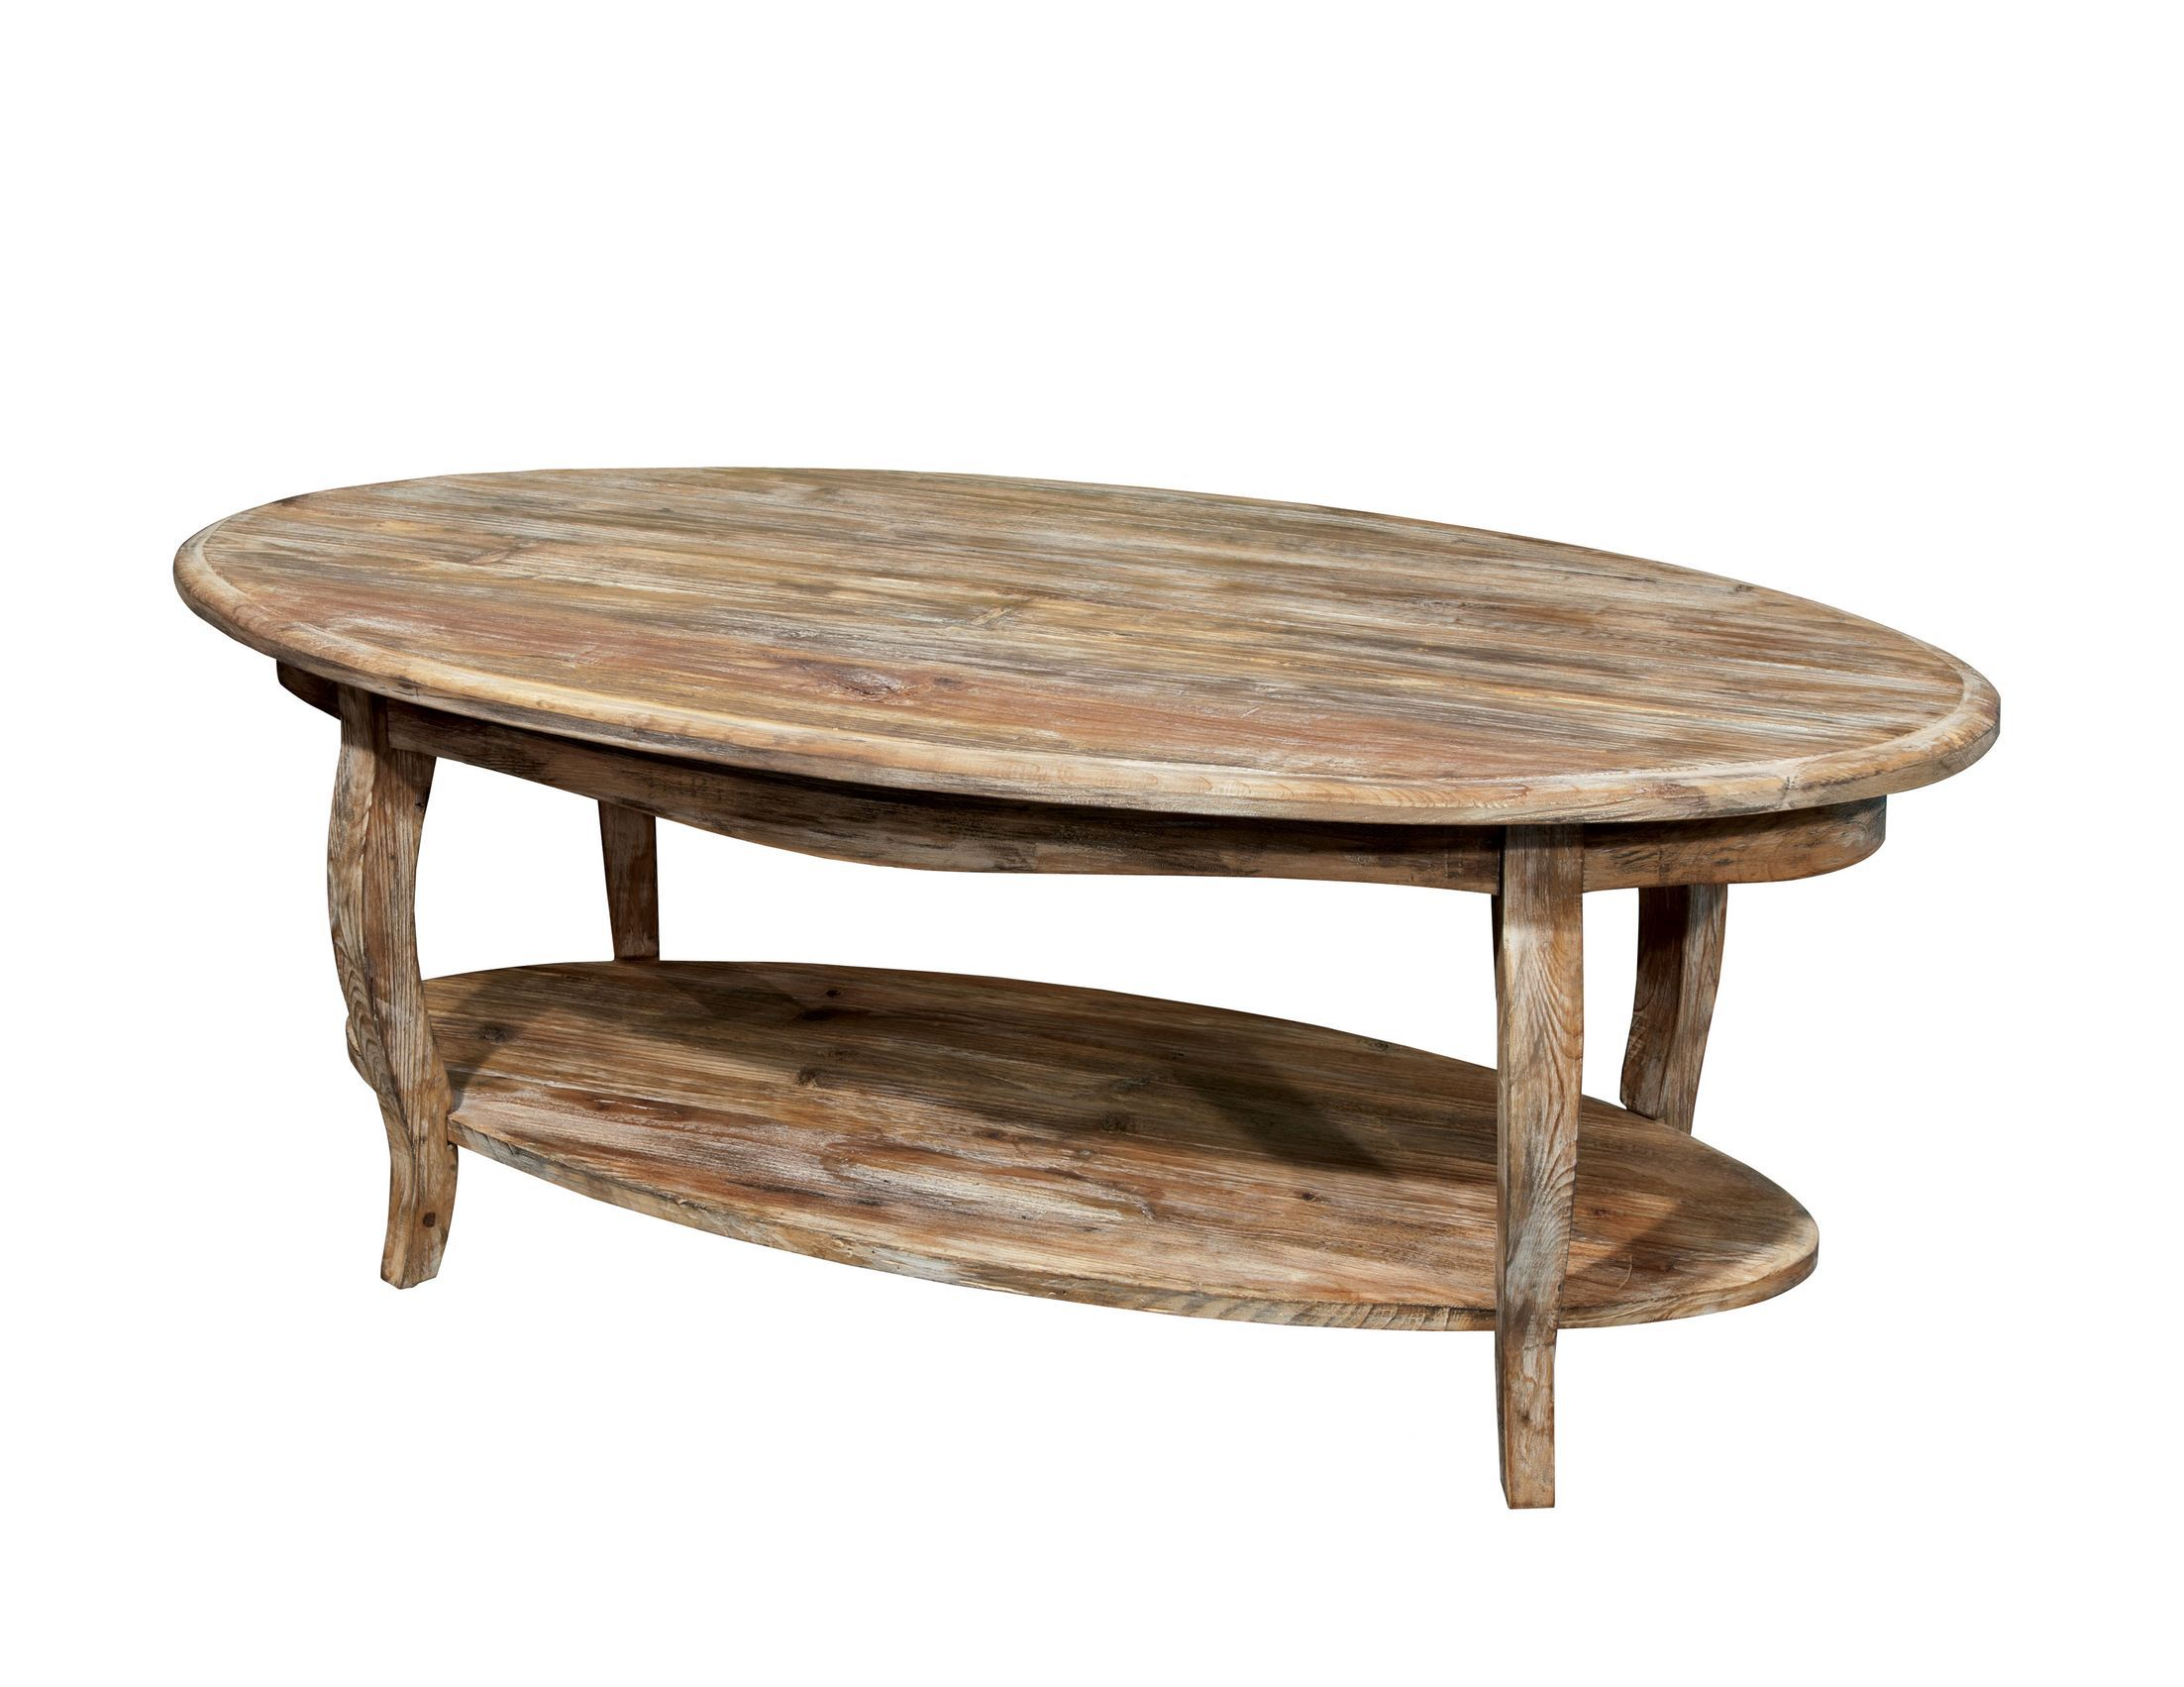 Alaterre Rustic Reclaimed Driftwood Oval Coffee Table